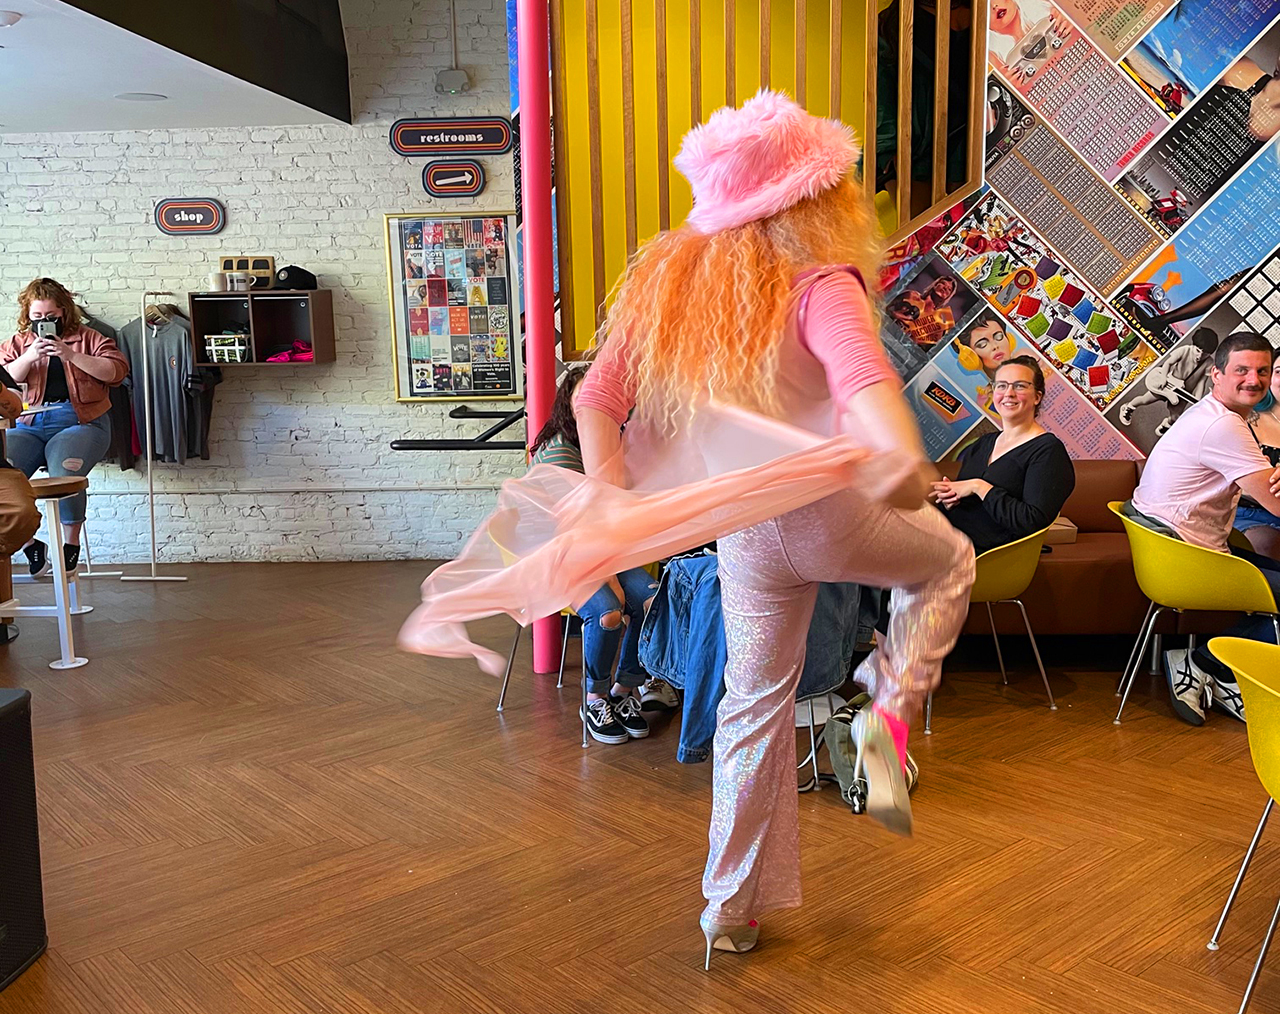 Drag brunch is now a monthly event at Solomon's Deli in Sacramento.